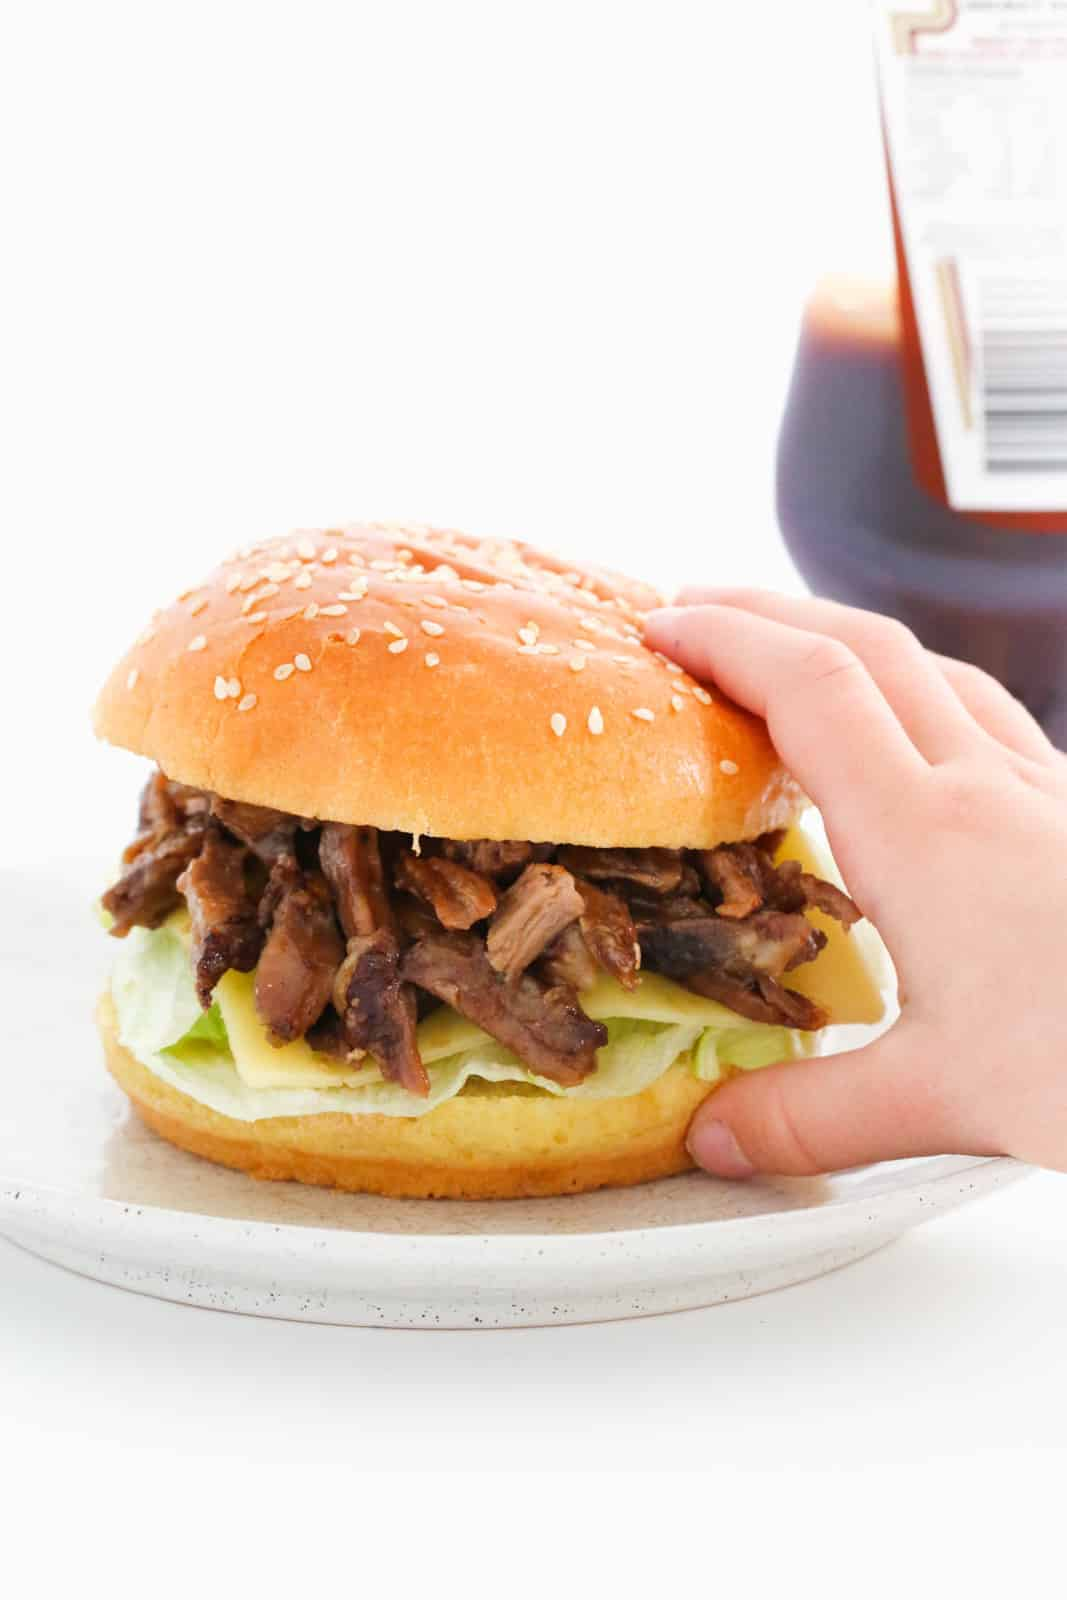 A hand picking up a burger filled with roast lamb, cheese and lettuce with BBQ sauce in the background.